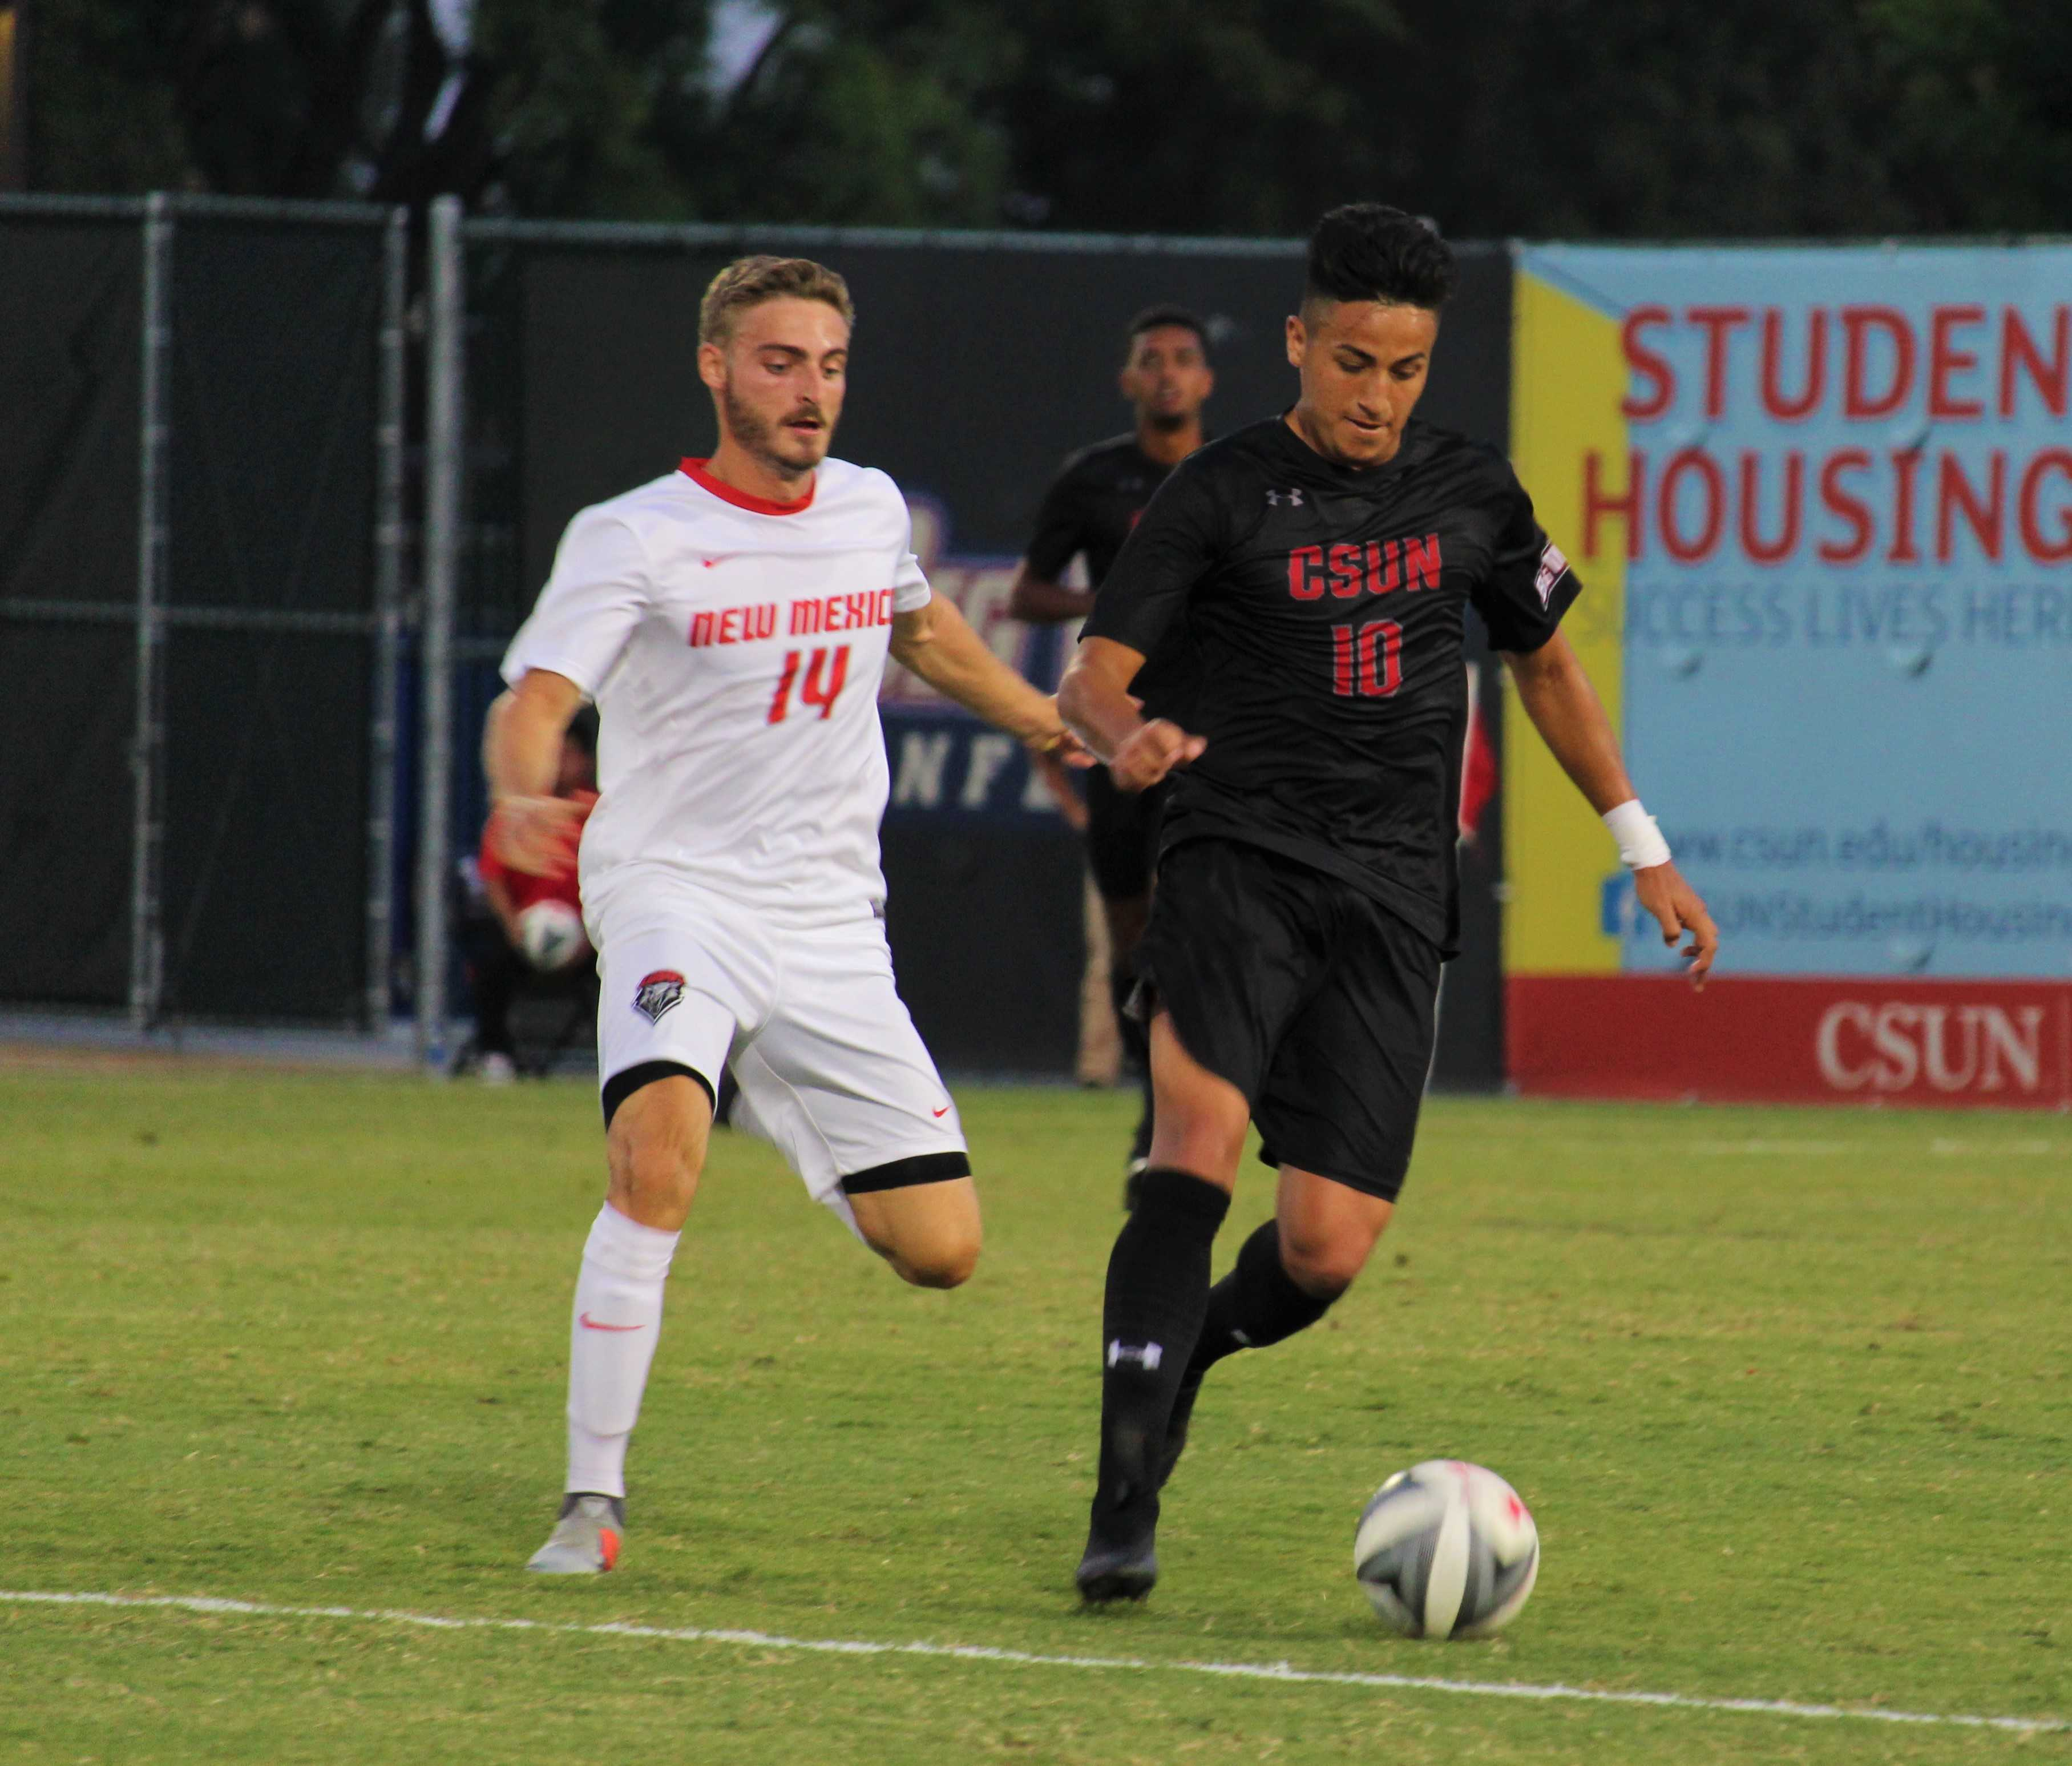 Forward Michael Flores dribbles away from a Photo credit: Justin Lee